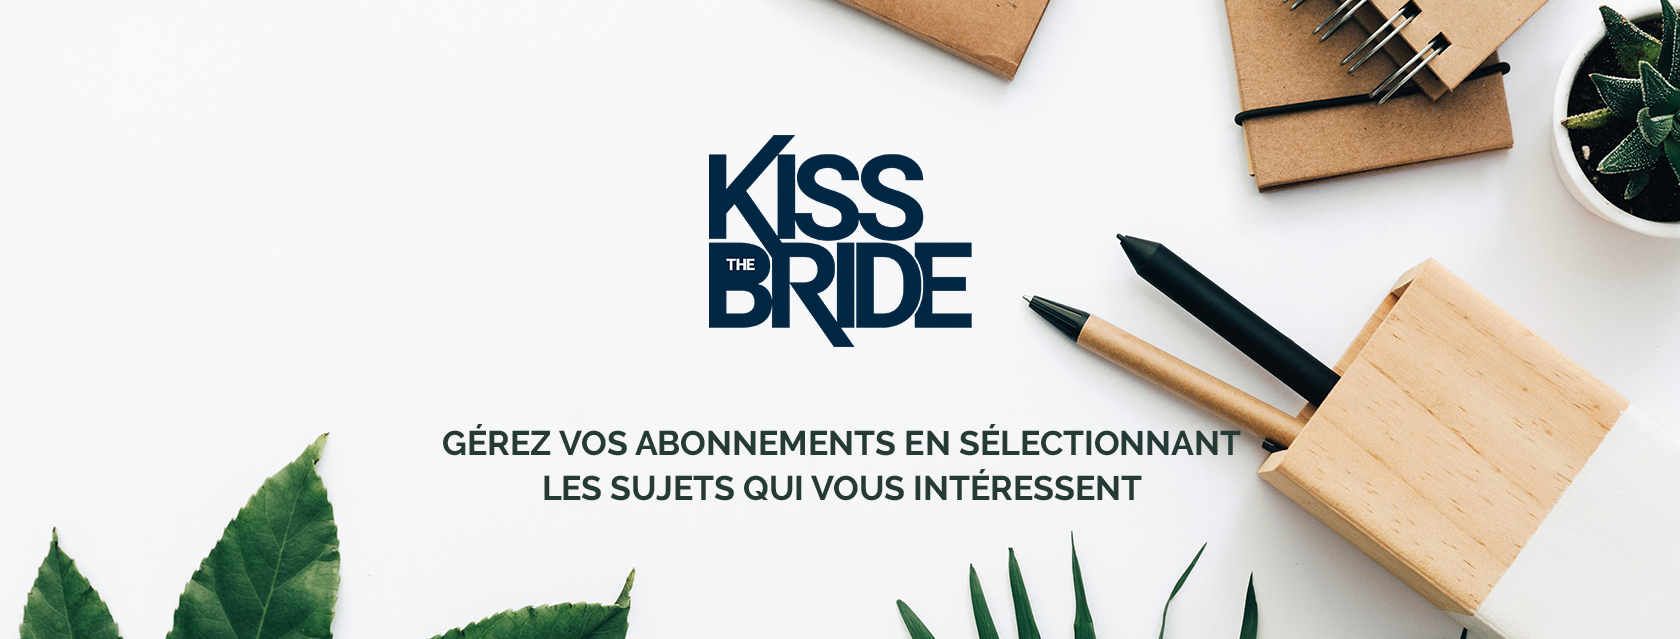 Kiss The Bride Gérez vos abonnements